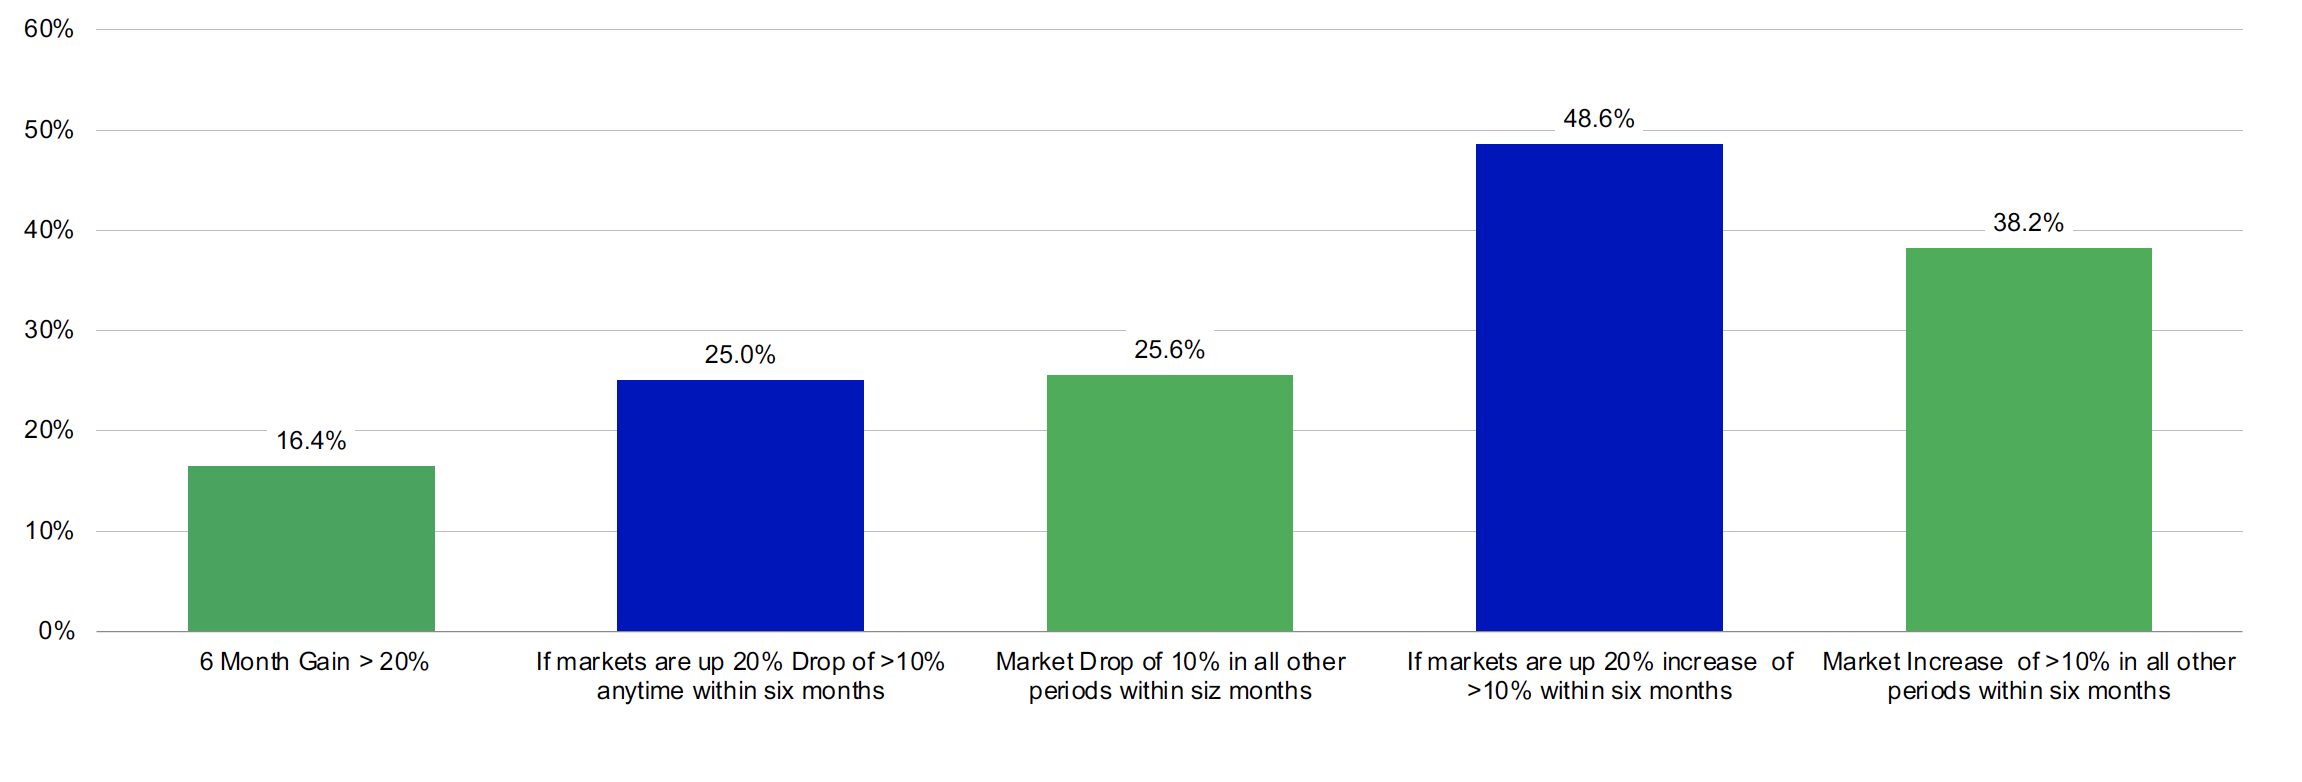 This bar chart shows the frequency returns greater than 20% within a 6 month period is 16.4%. Then is shows that the chance of a return of a drop of greater than 10% following a gain of 20% is 25.%, which is essentially the same chance of a drop of greater than 10% in any 6-month period. It then shows that the chance of a gain greater than 10% followinga gain of 20% within six months is 48.6%, which is much greater than the probability of a gain of 10% or more in any 6-month period which is only 38.2%.